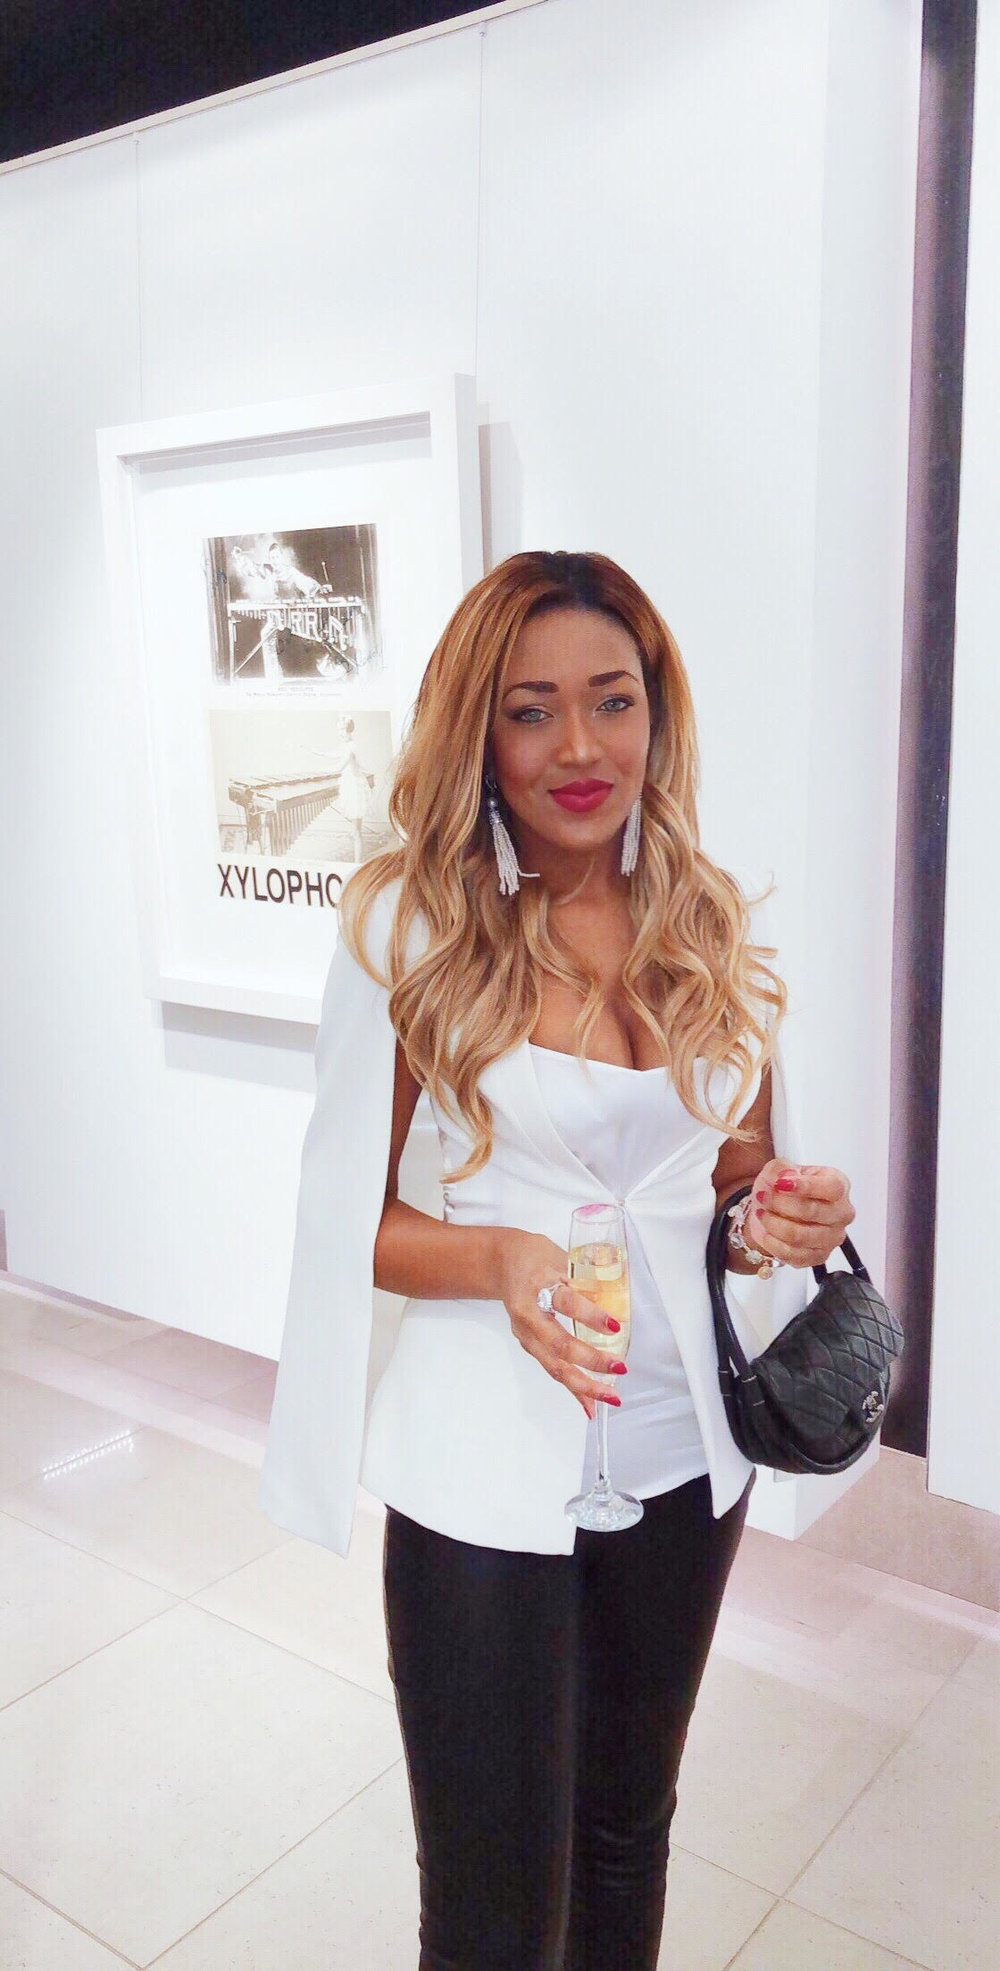 gallery event + style + fashion + cristal flores carrington + dynasty + white cape jacket + style + outfit 1.jpg